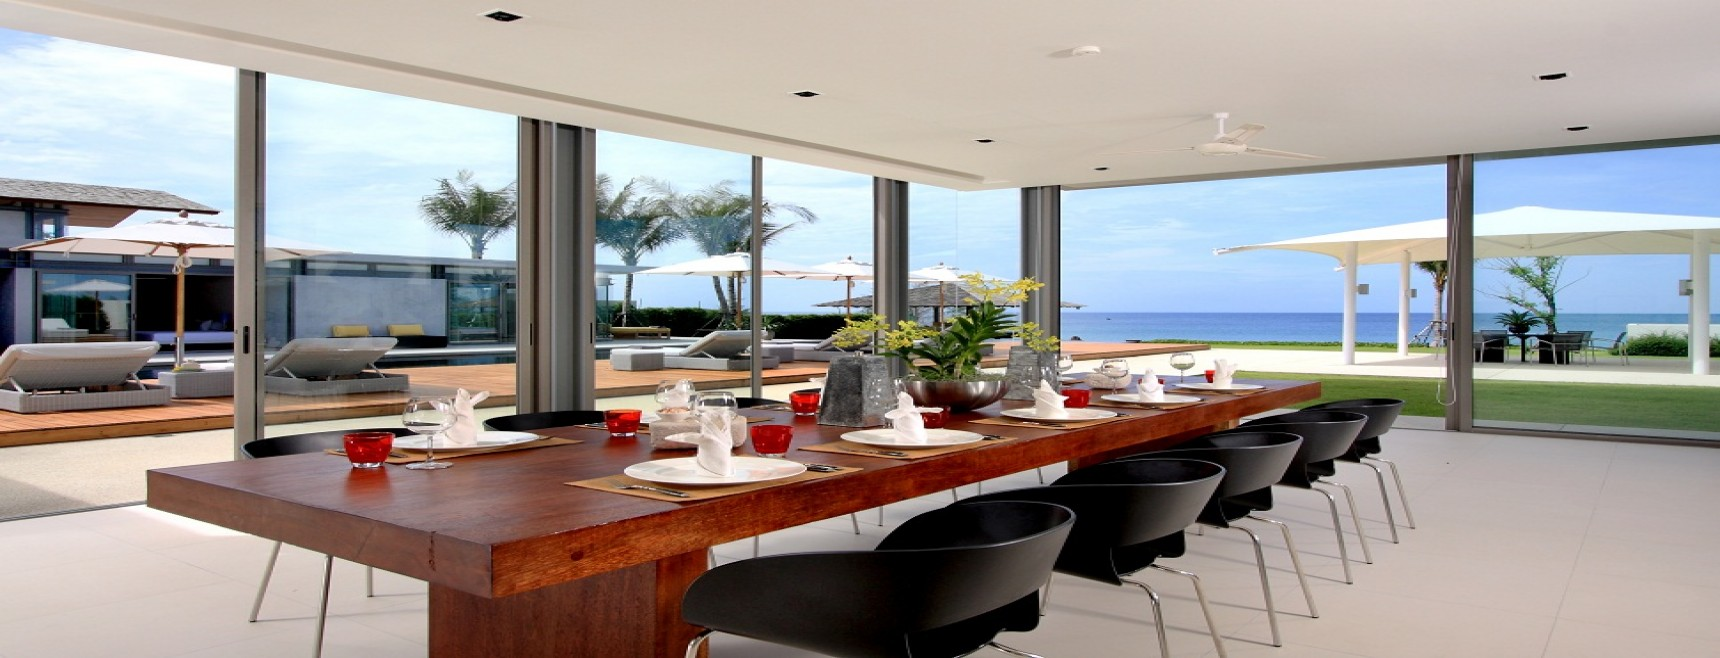 Distinctive luxury beachside appeal